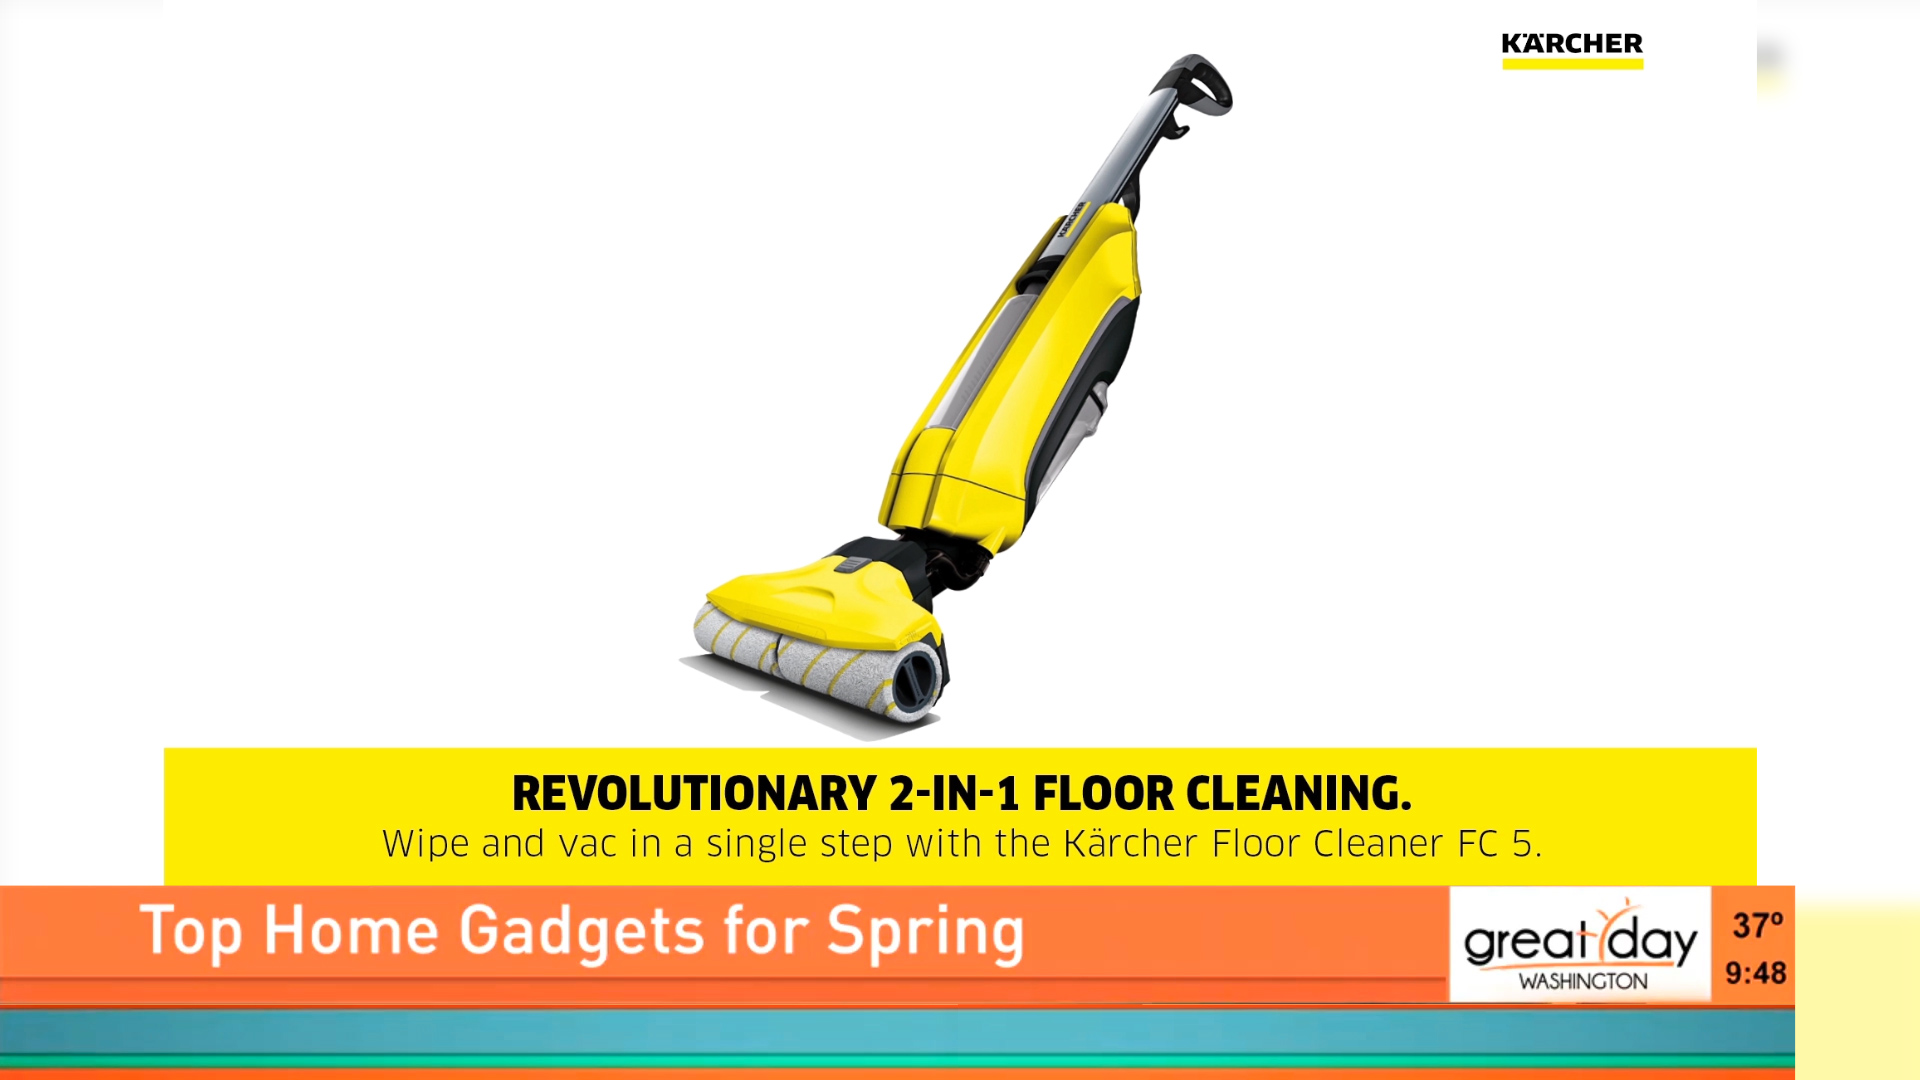 KARCHER FC5 FLOOR CLEANER - $299Shop Now